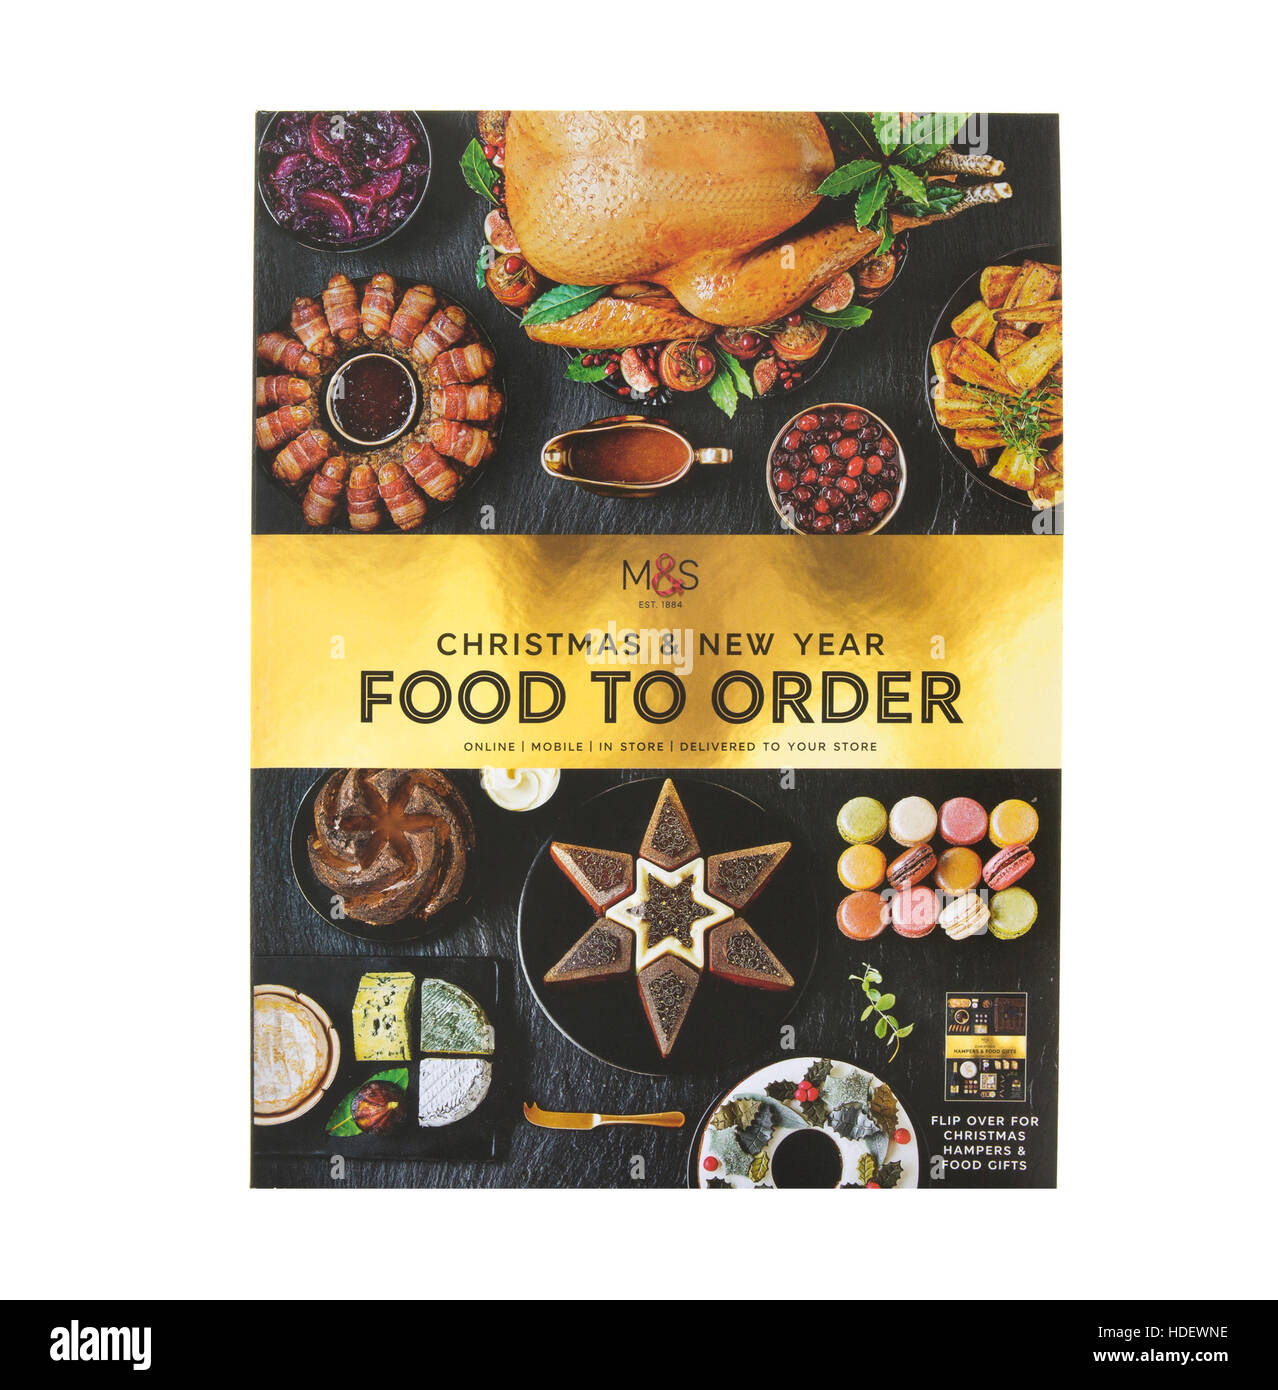 Marks And Spencer Christmas Food To Go Gifts on a white background - Stock Image